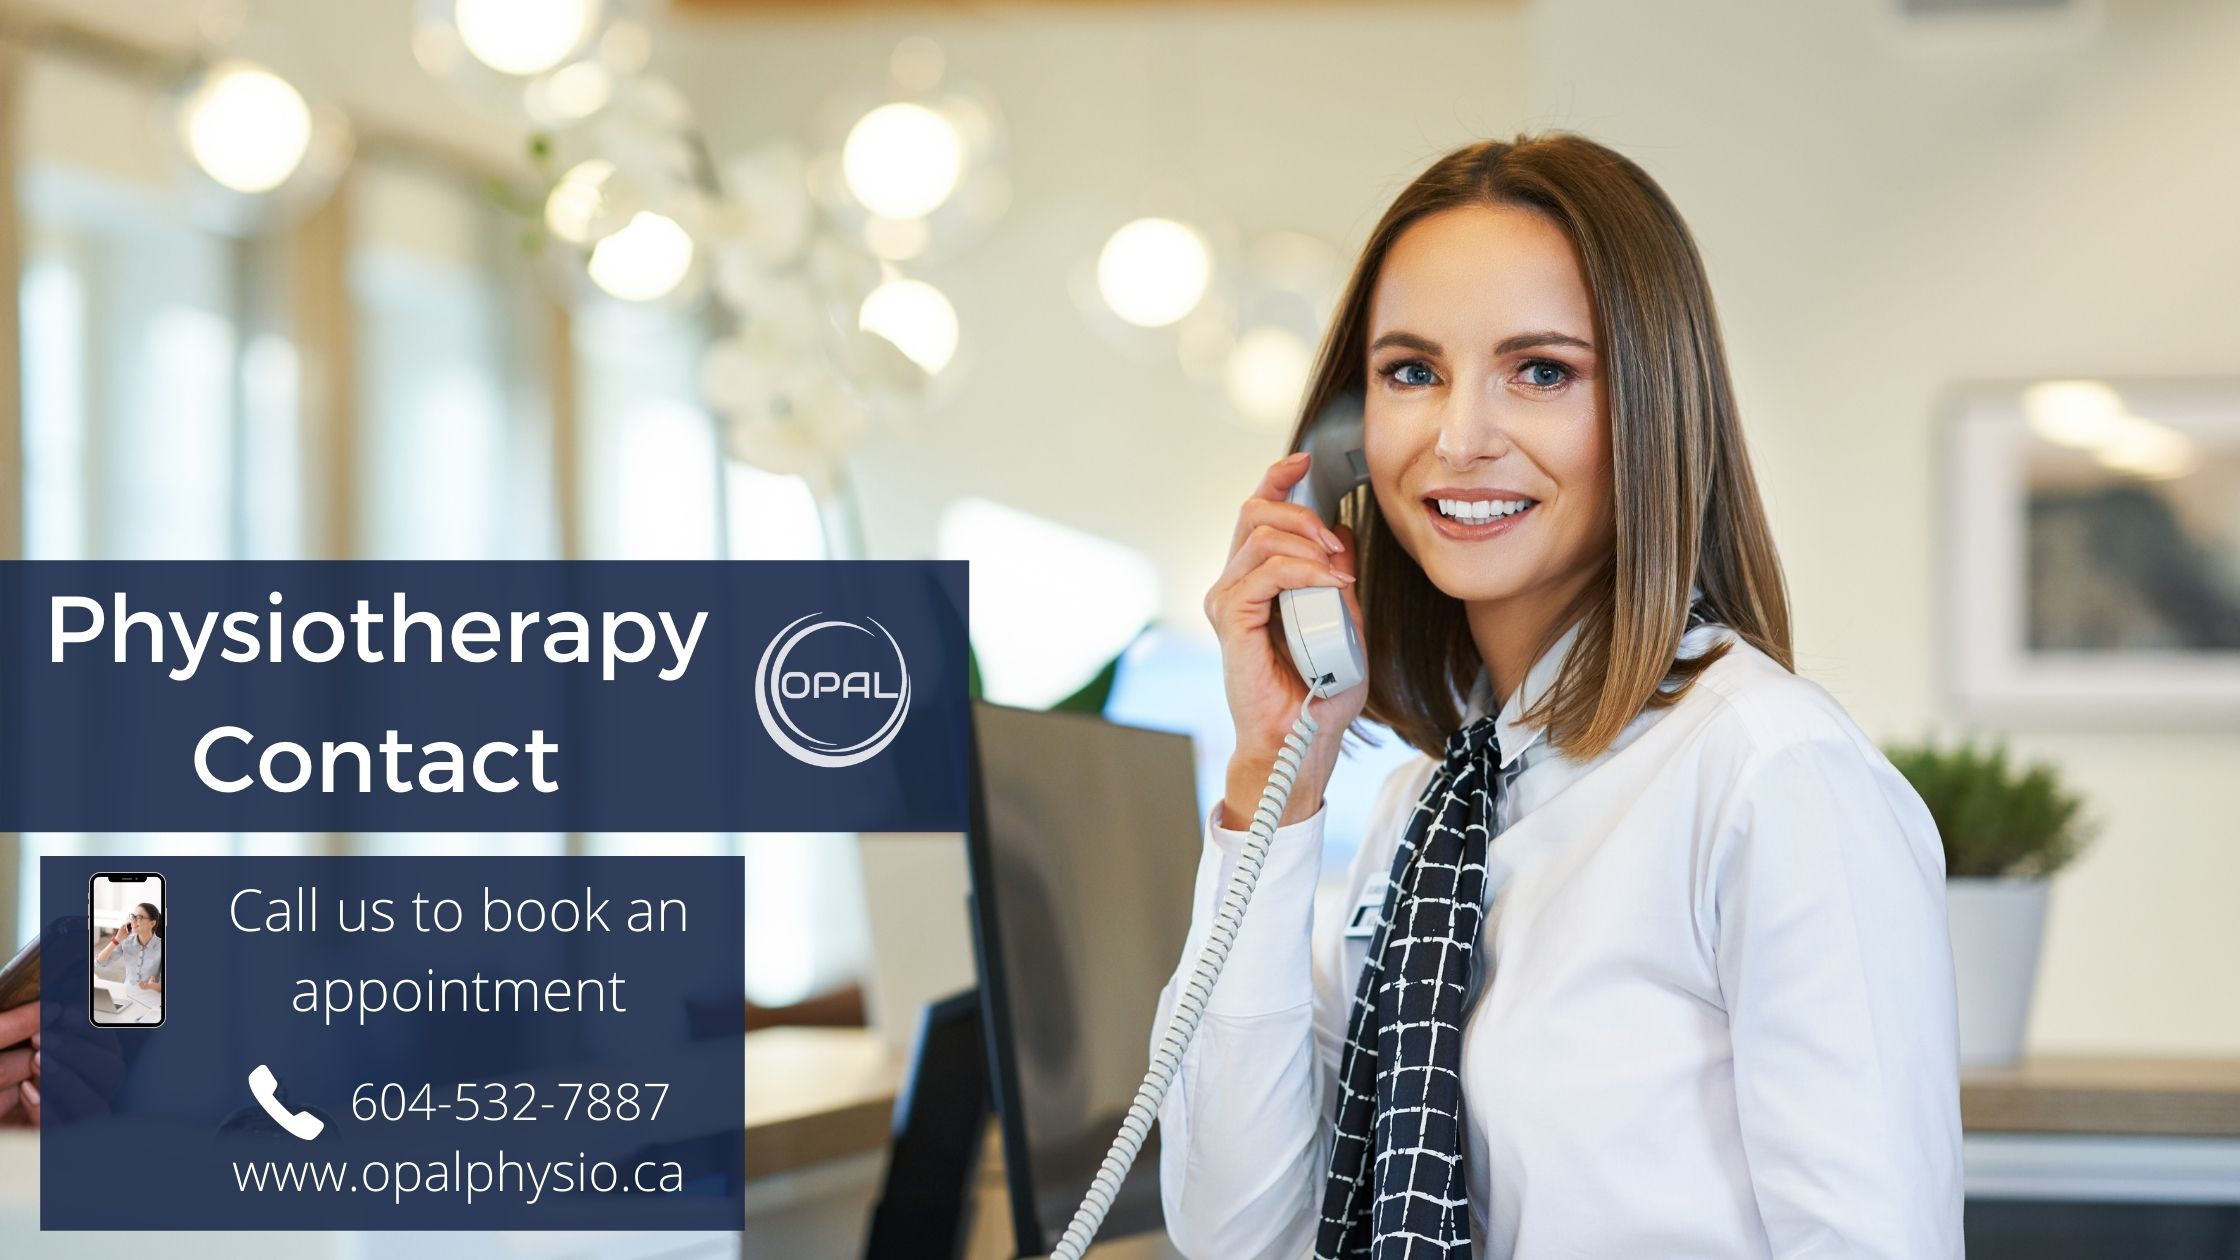 Physiotherapy Contact - Physiotherapist